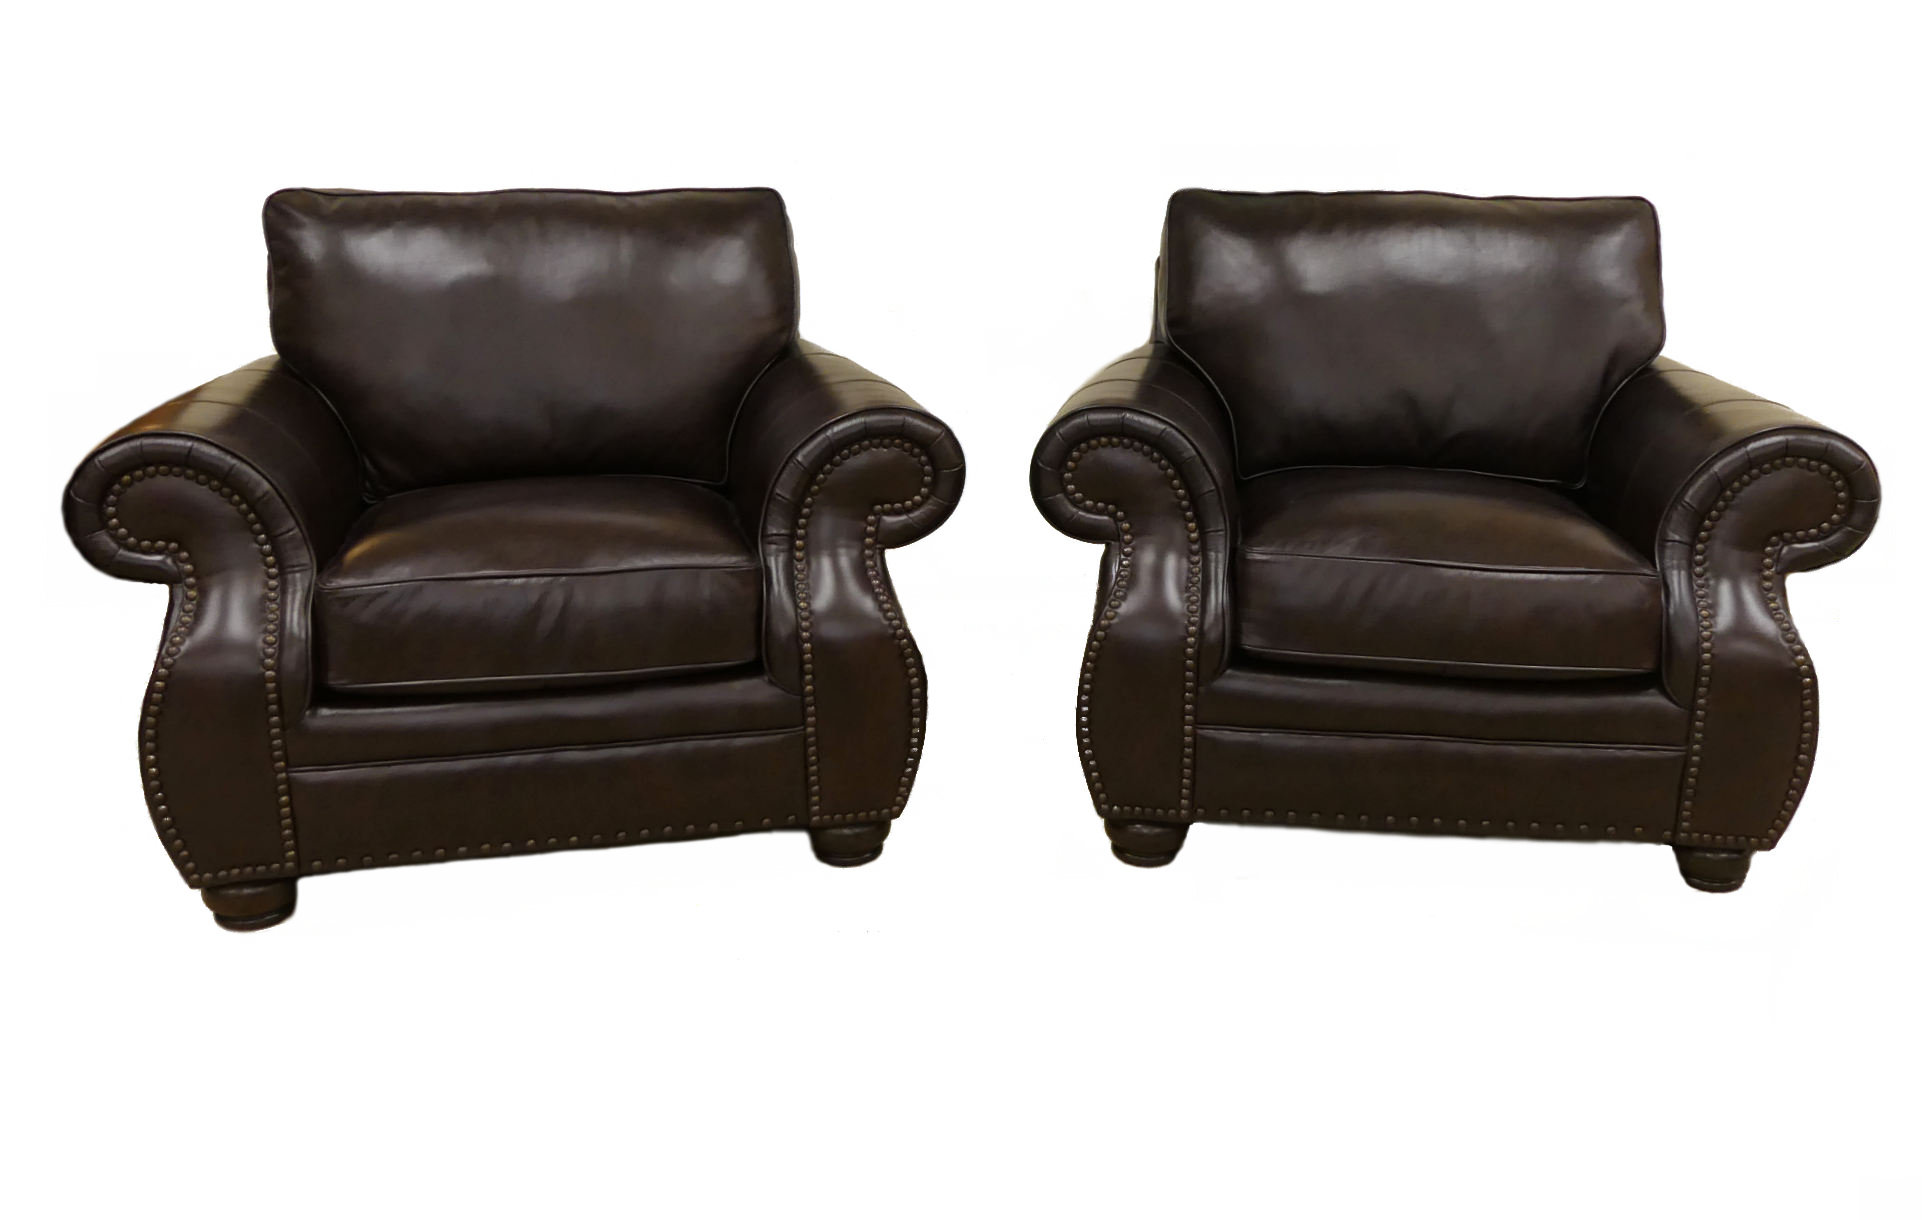 SOLD Pair of 2 Bernhardt Furniture Leather Club Chairs